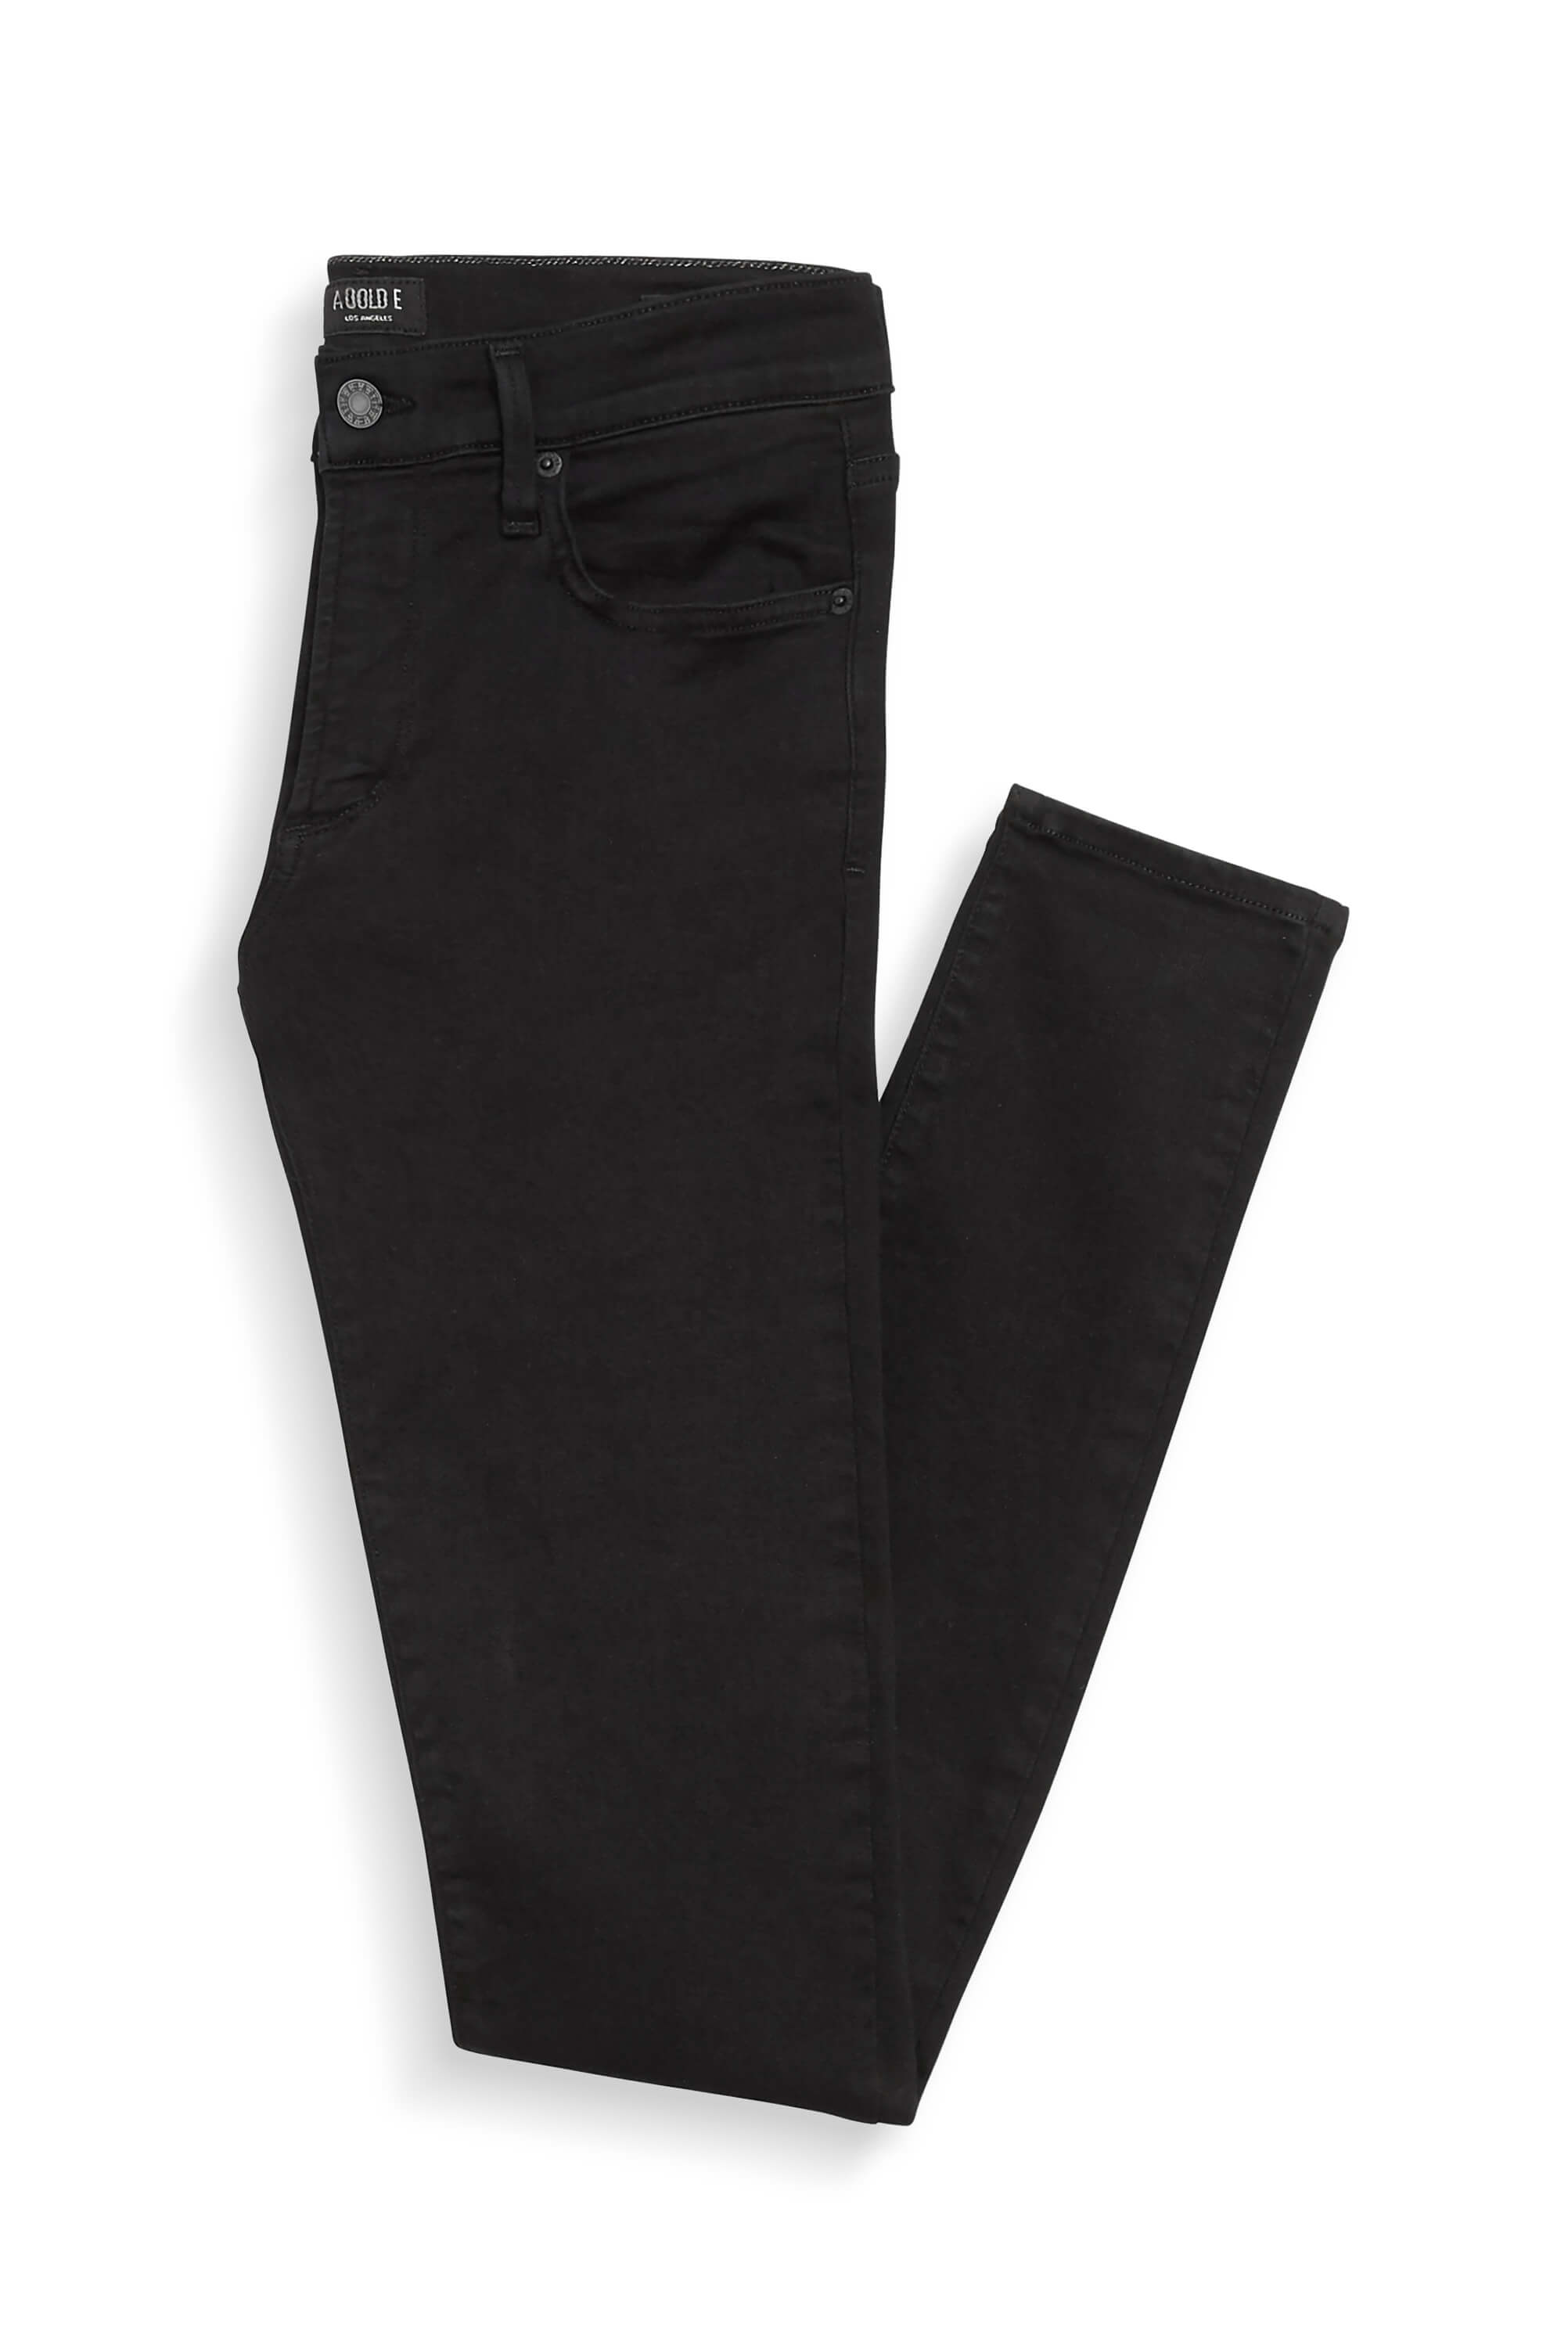 Black Jeans by A Gold E